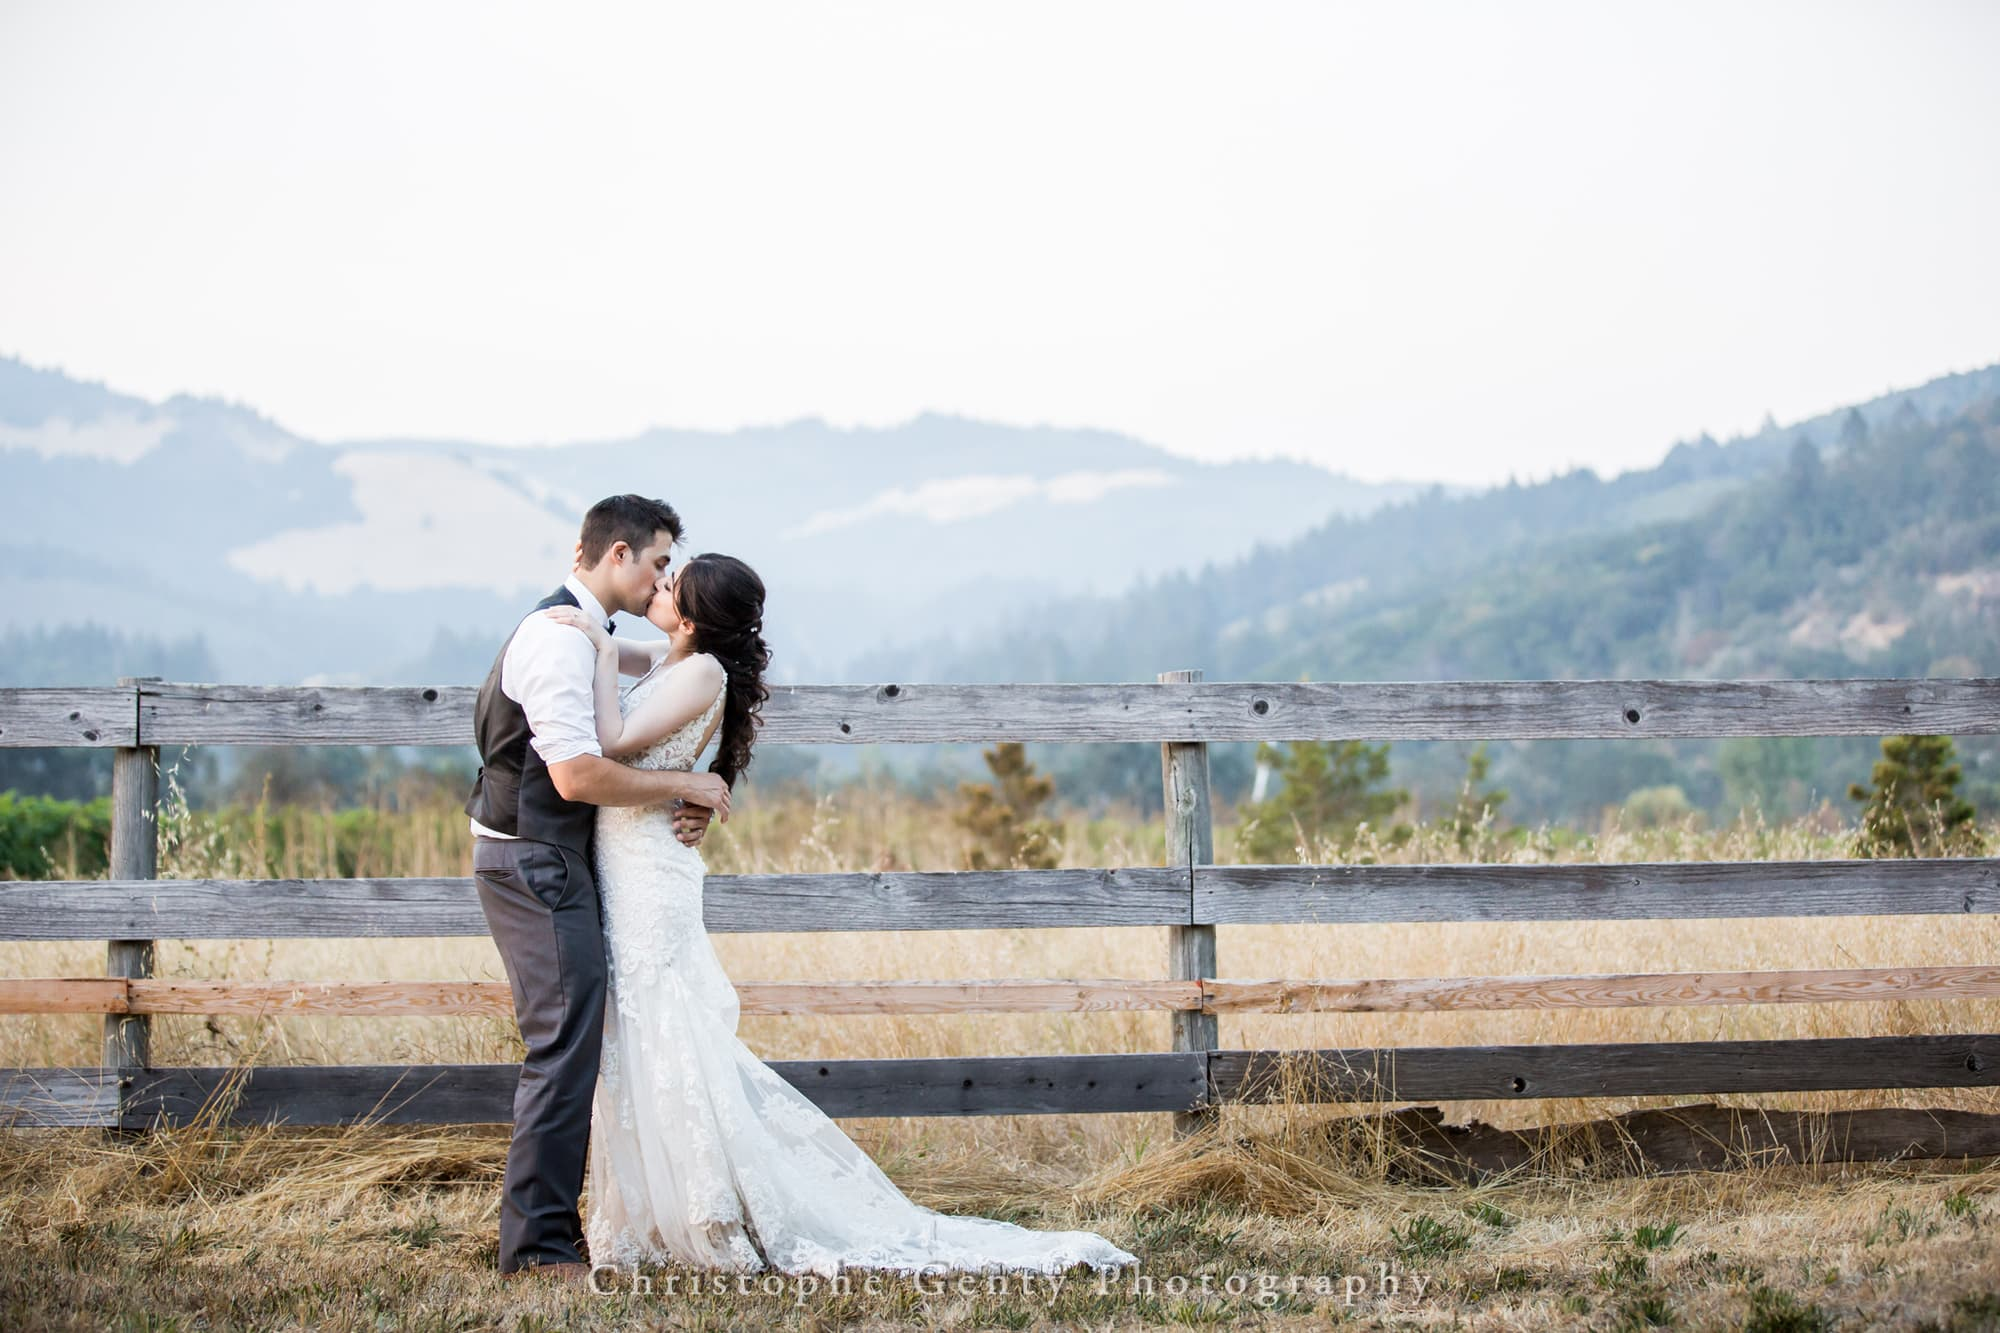 Kenwood Ranch of Sonoma at the Kenwood Farms - Kenwood, CA - Wedding Photography